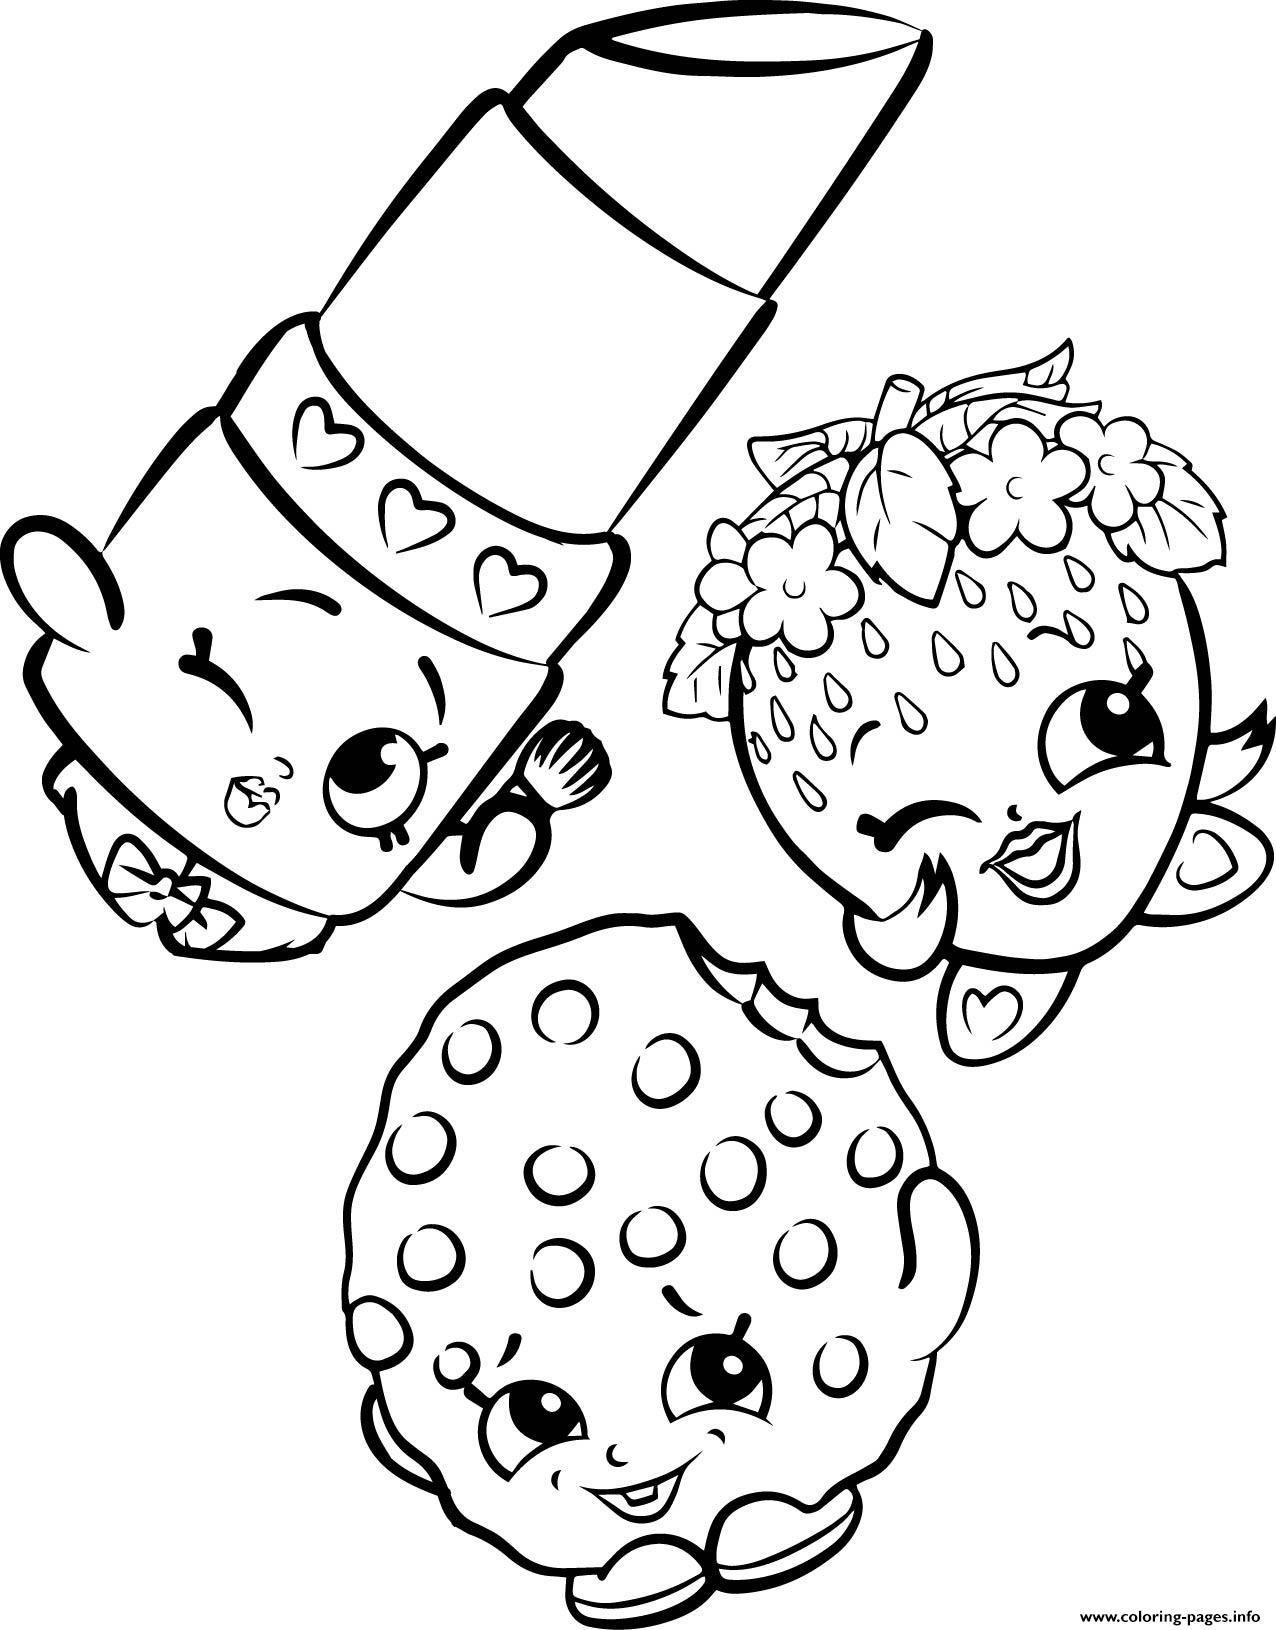 Free Shopkins Strawberry Lipstick Cookie Coloring Pages Printable